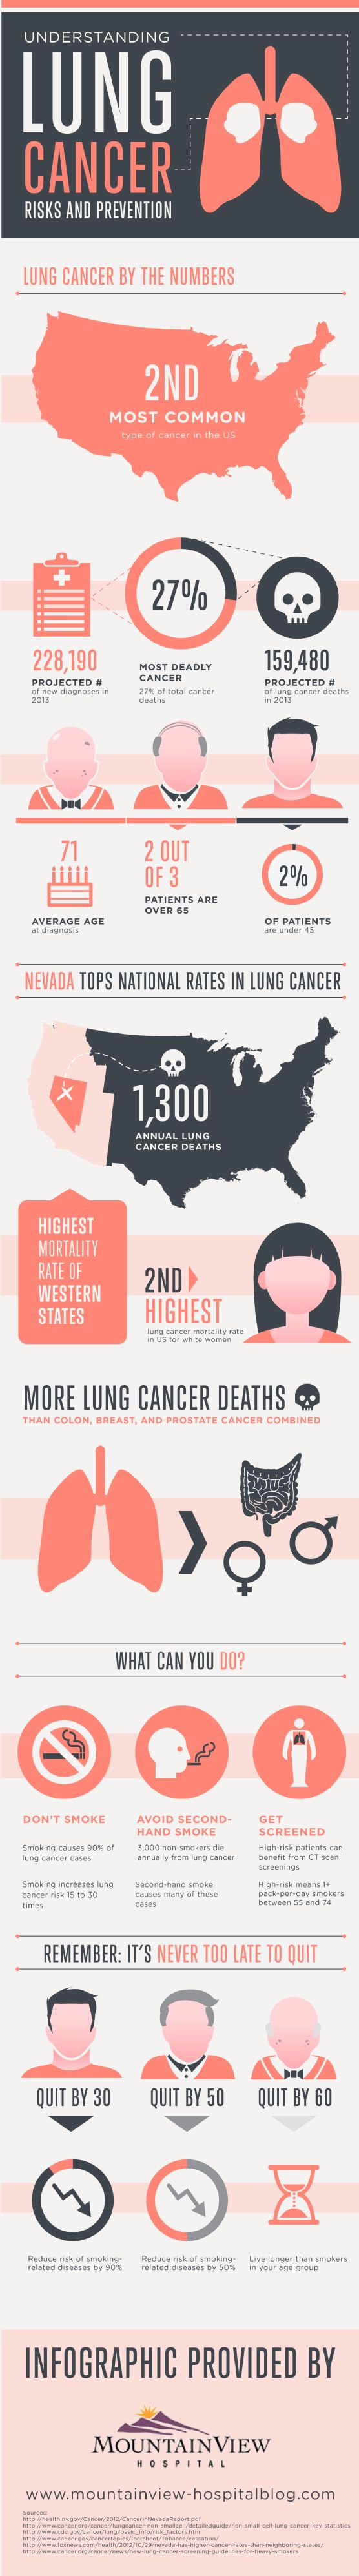 Lung Cancer Risks and Prevention